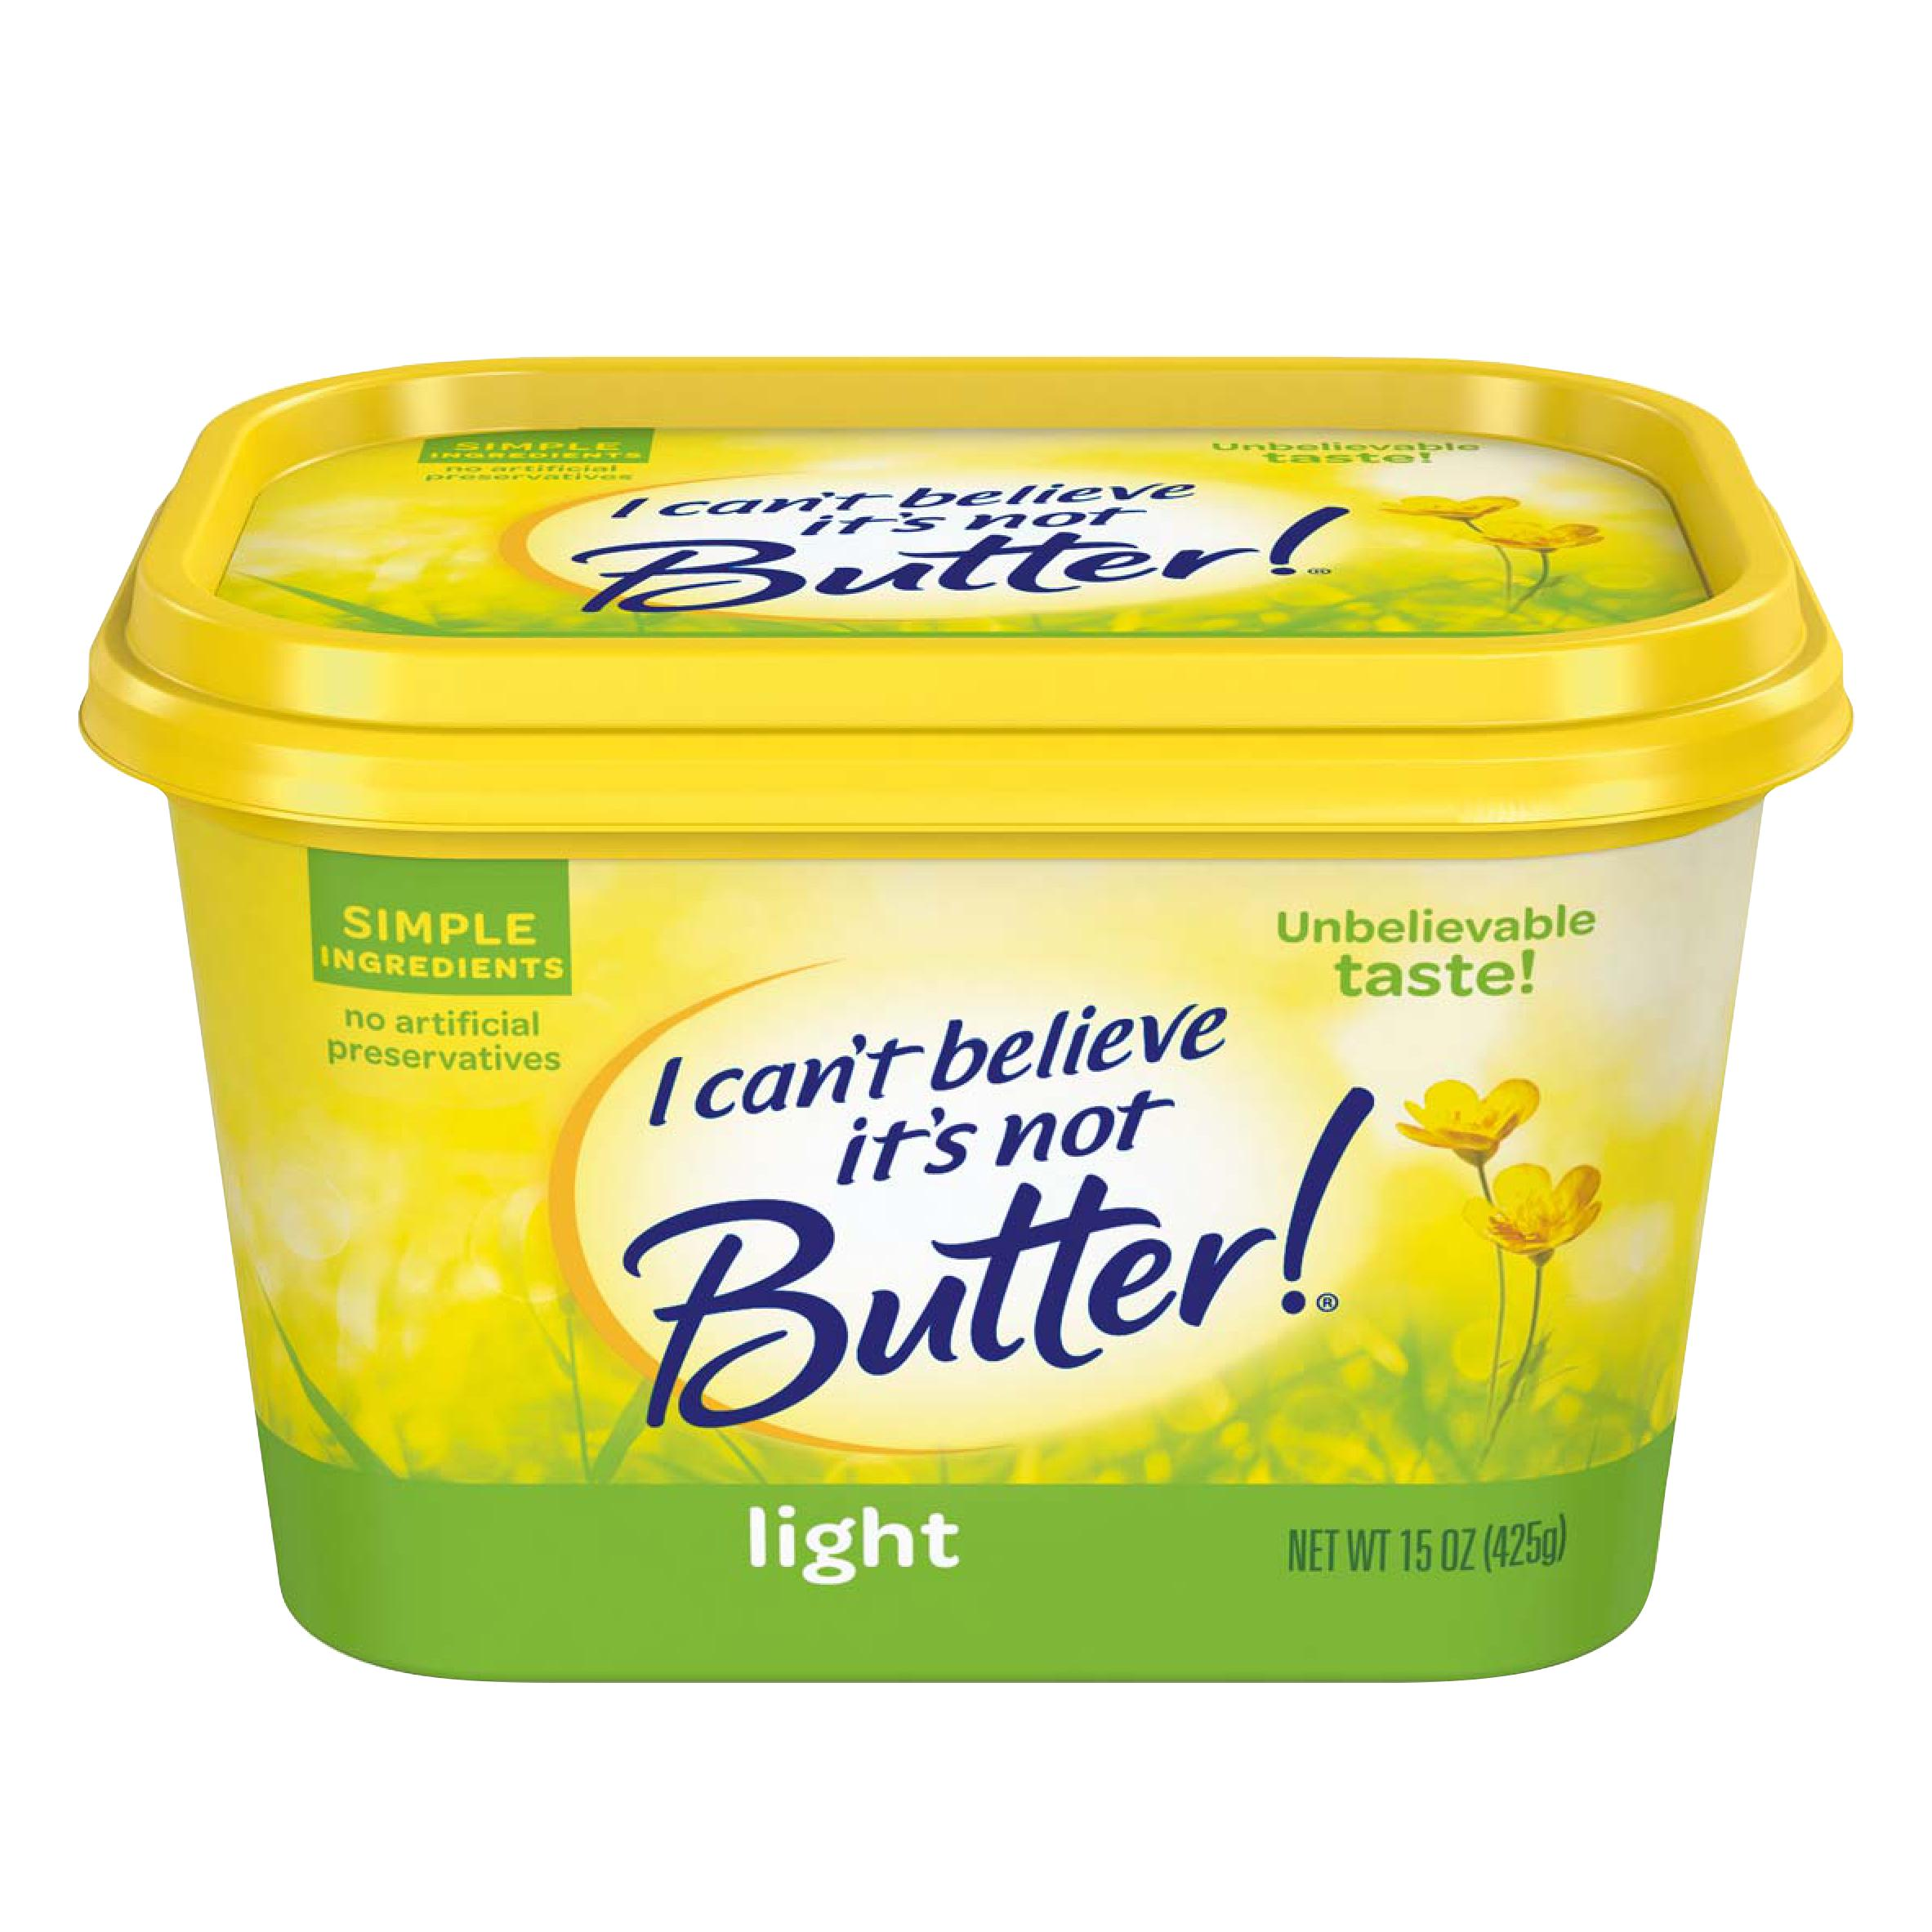 I Can't Believe It's Not Butter! Light 30% Vegetable Oil Spread